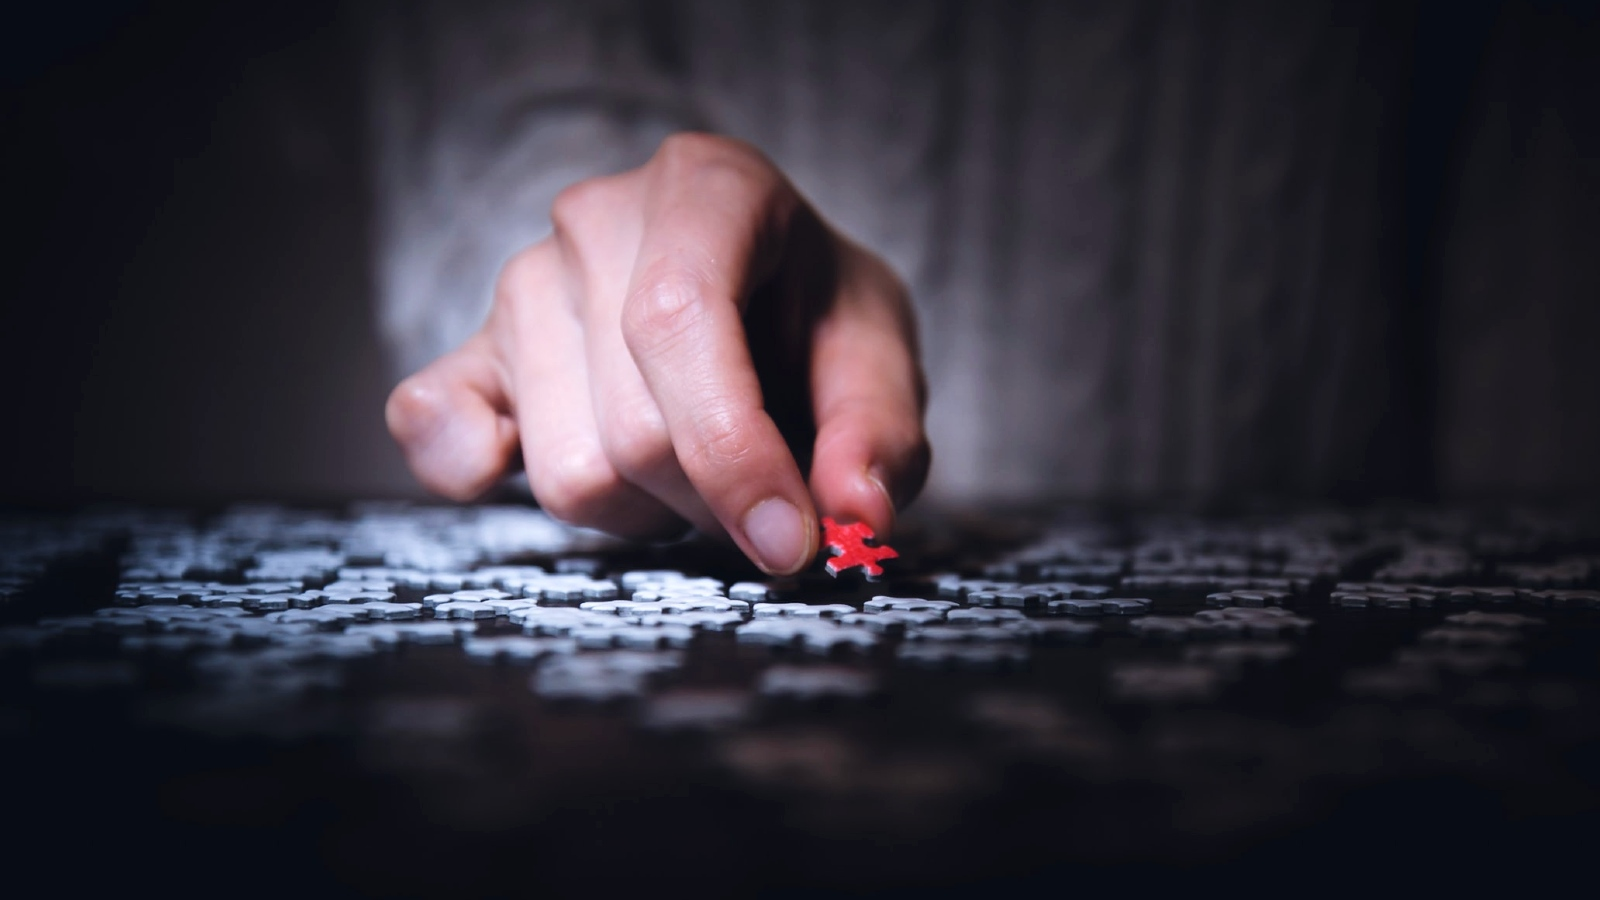 Windows 10 targeted by PuzzleMaker hackers using Chrome zero-days